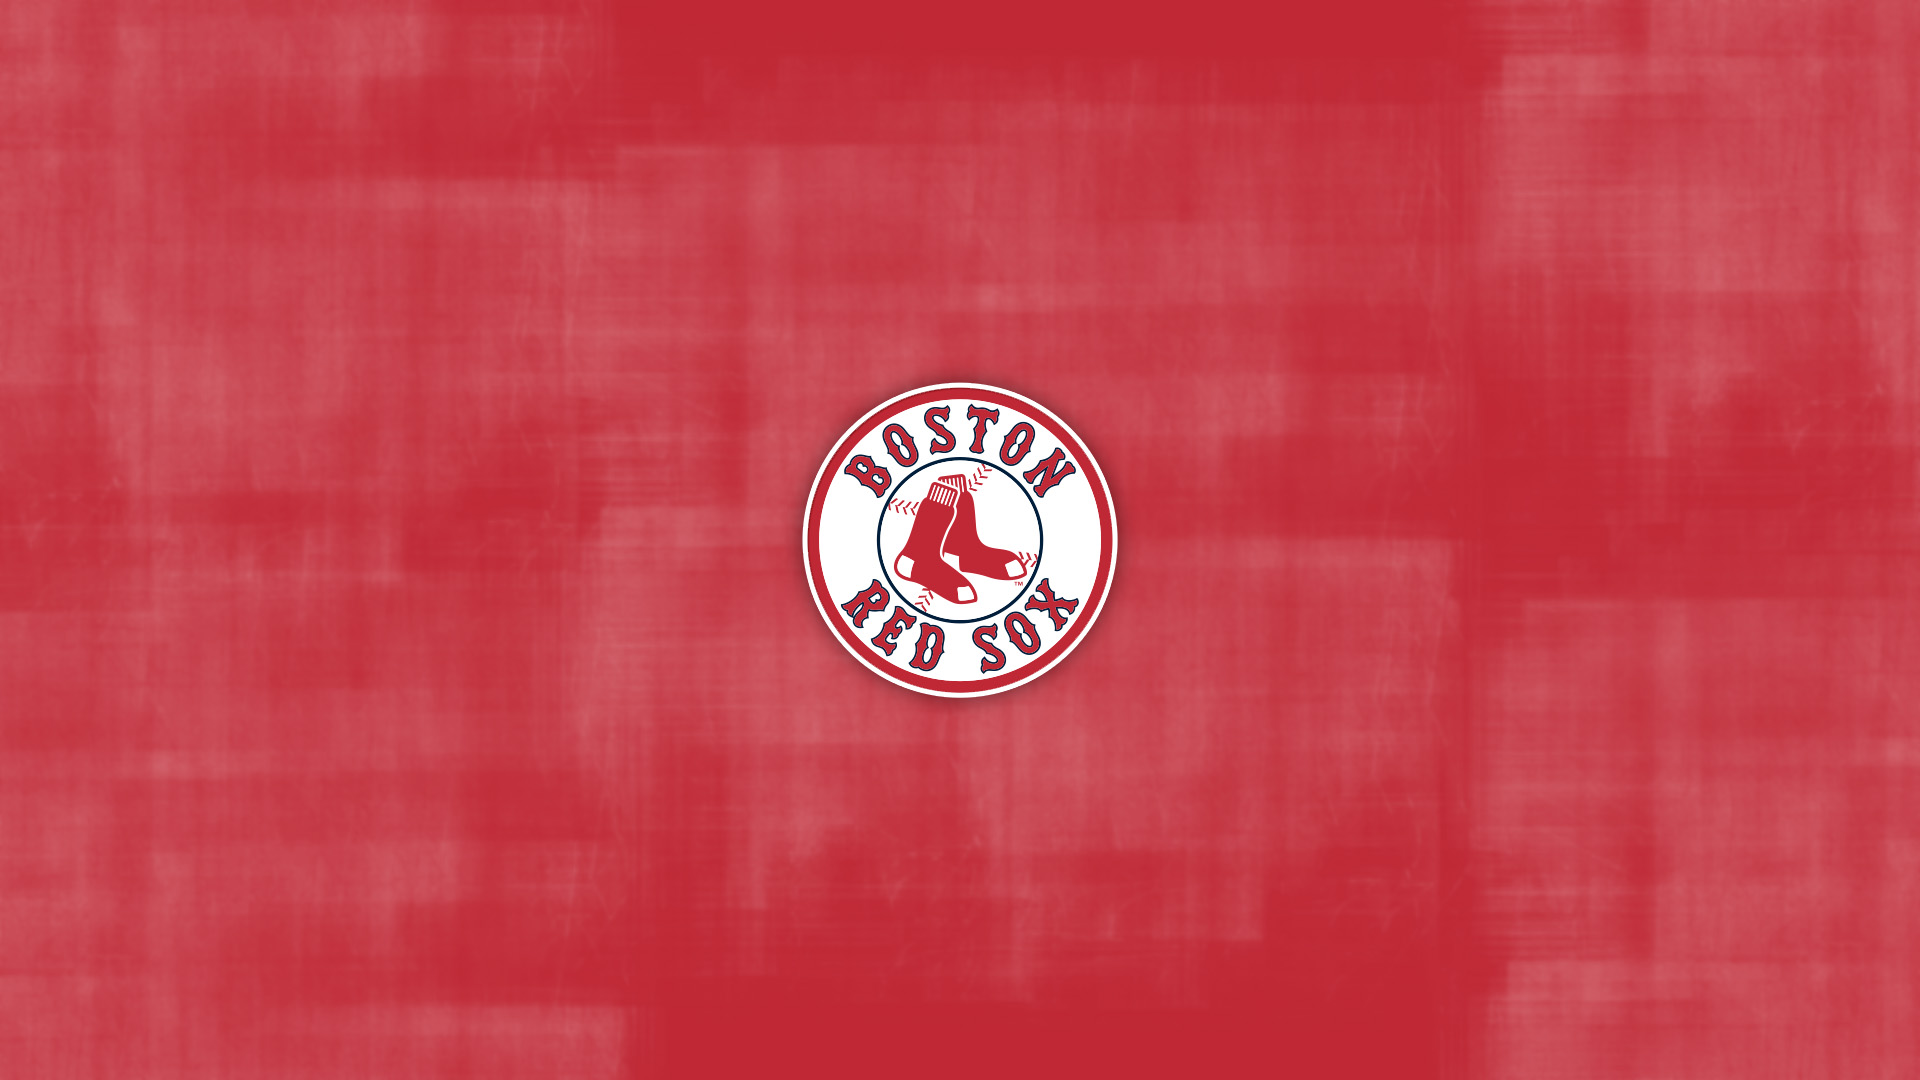 Boston Red Sox HD Wallpaper 1080p 1920x1080